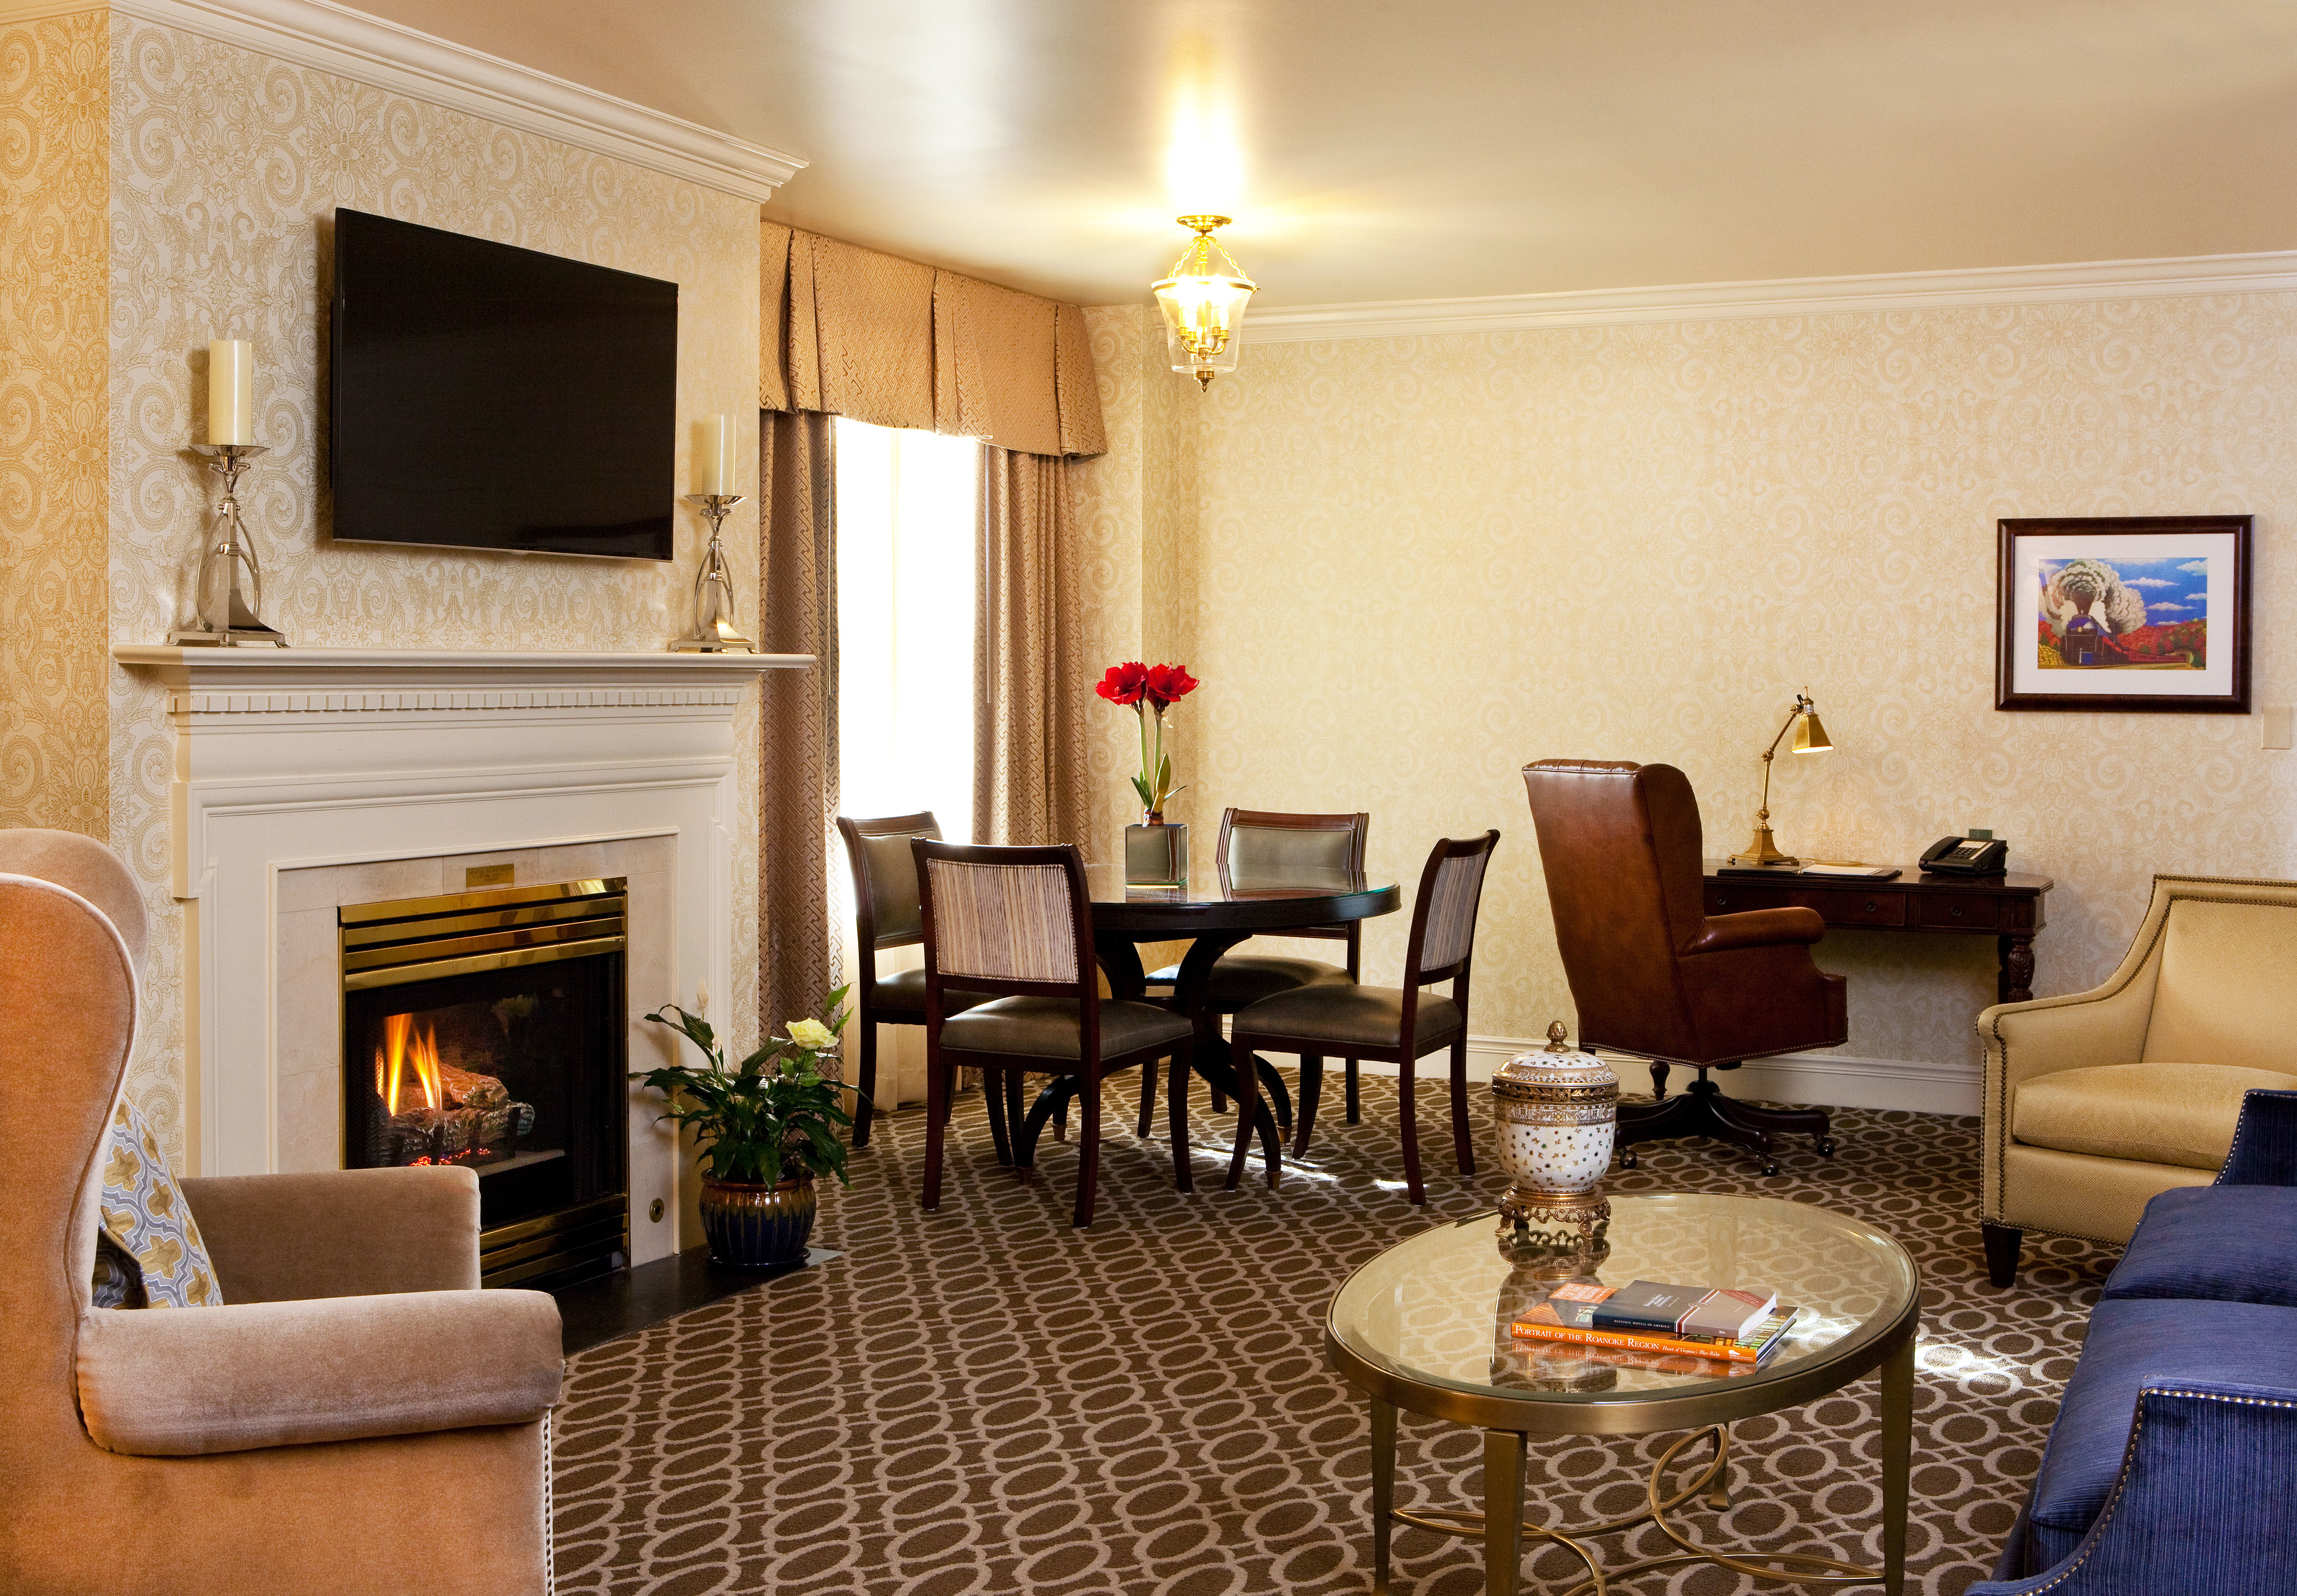 The Hotel Roanoke  U0026 Conference Center  Curio Collection By